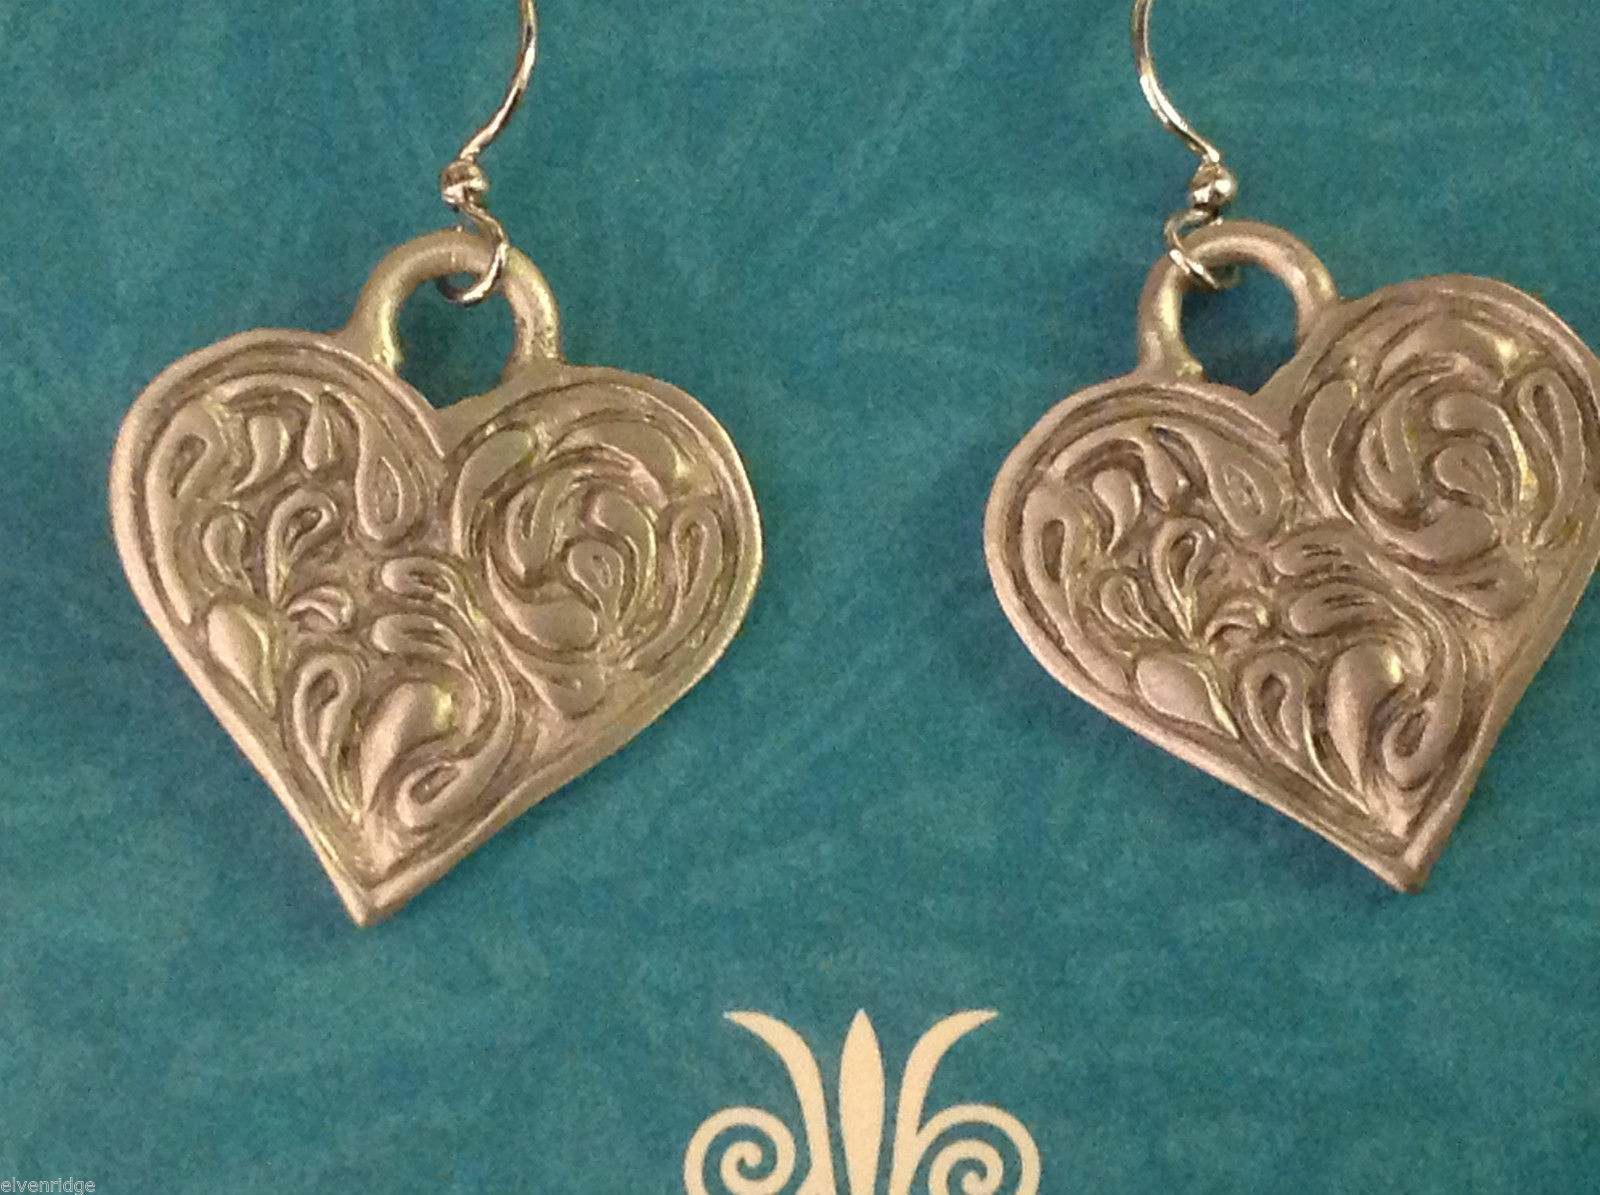 Heart earrings hand made in pewter with sterling silver ear wires USA made